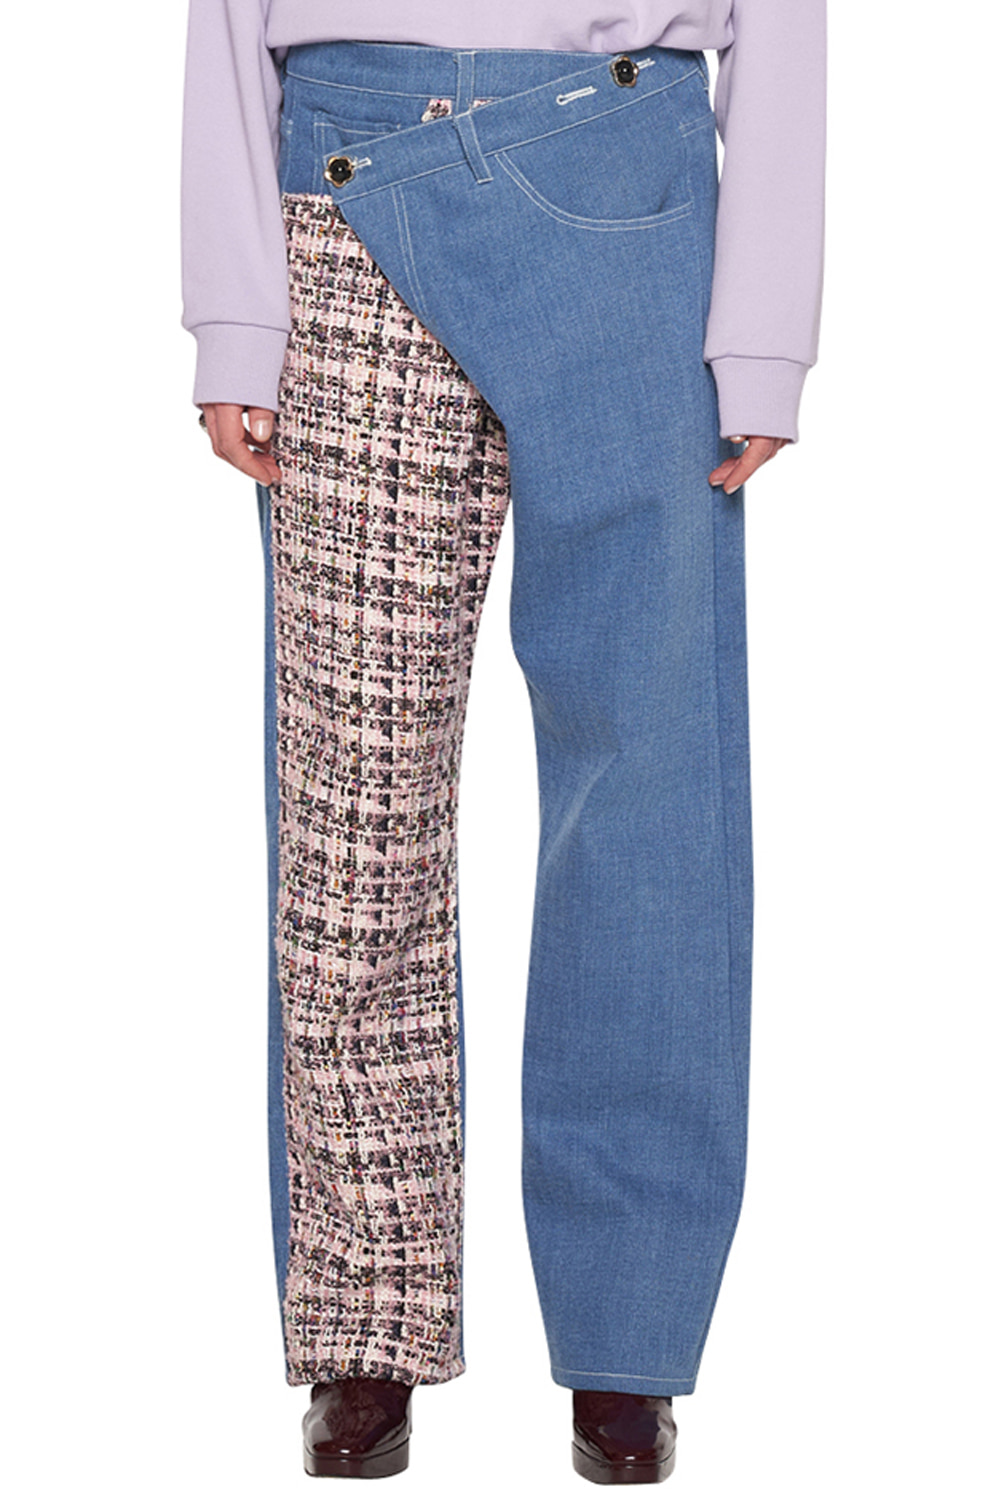 PINK TWEED PATCHED JEANS